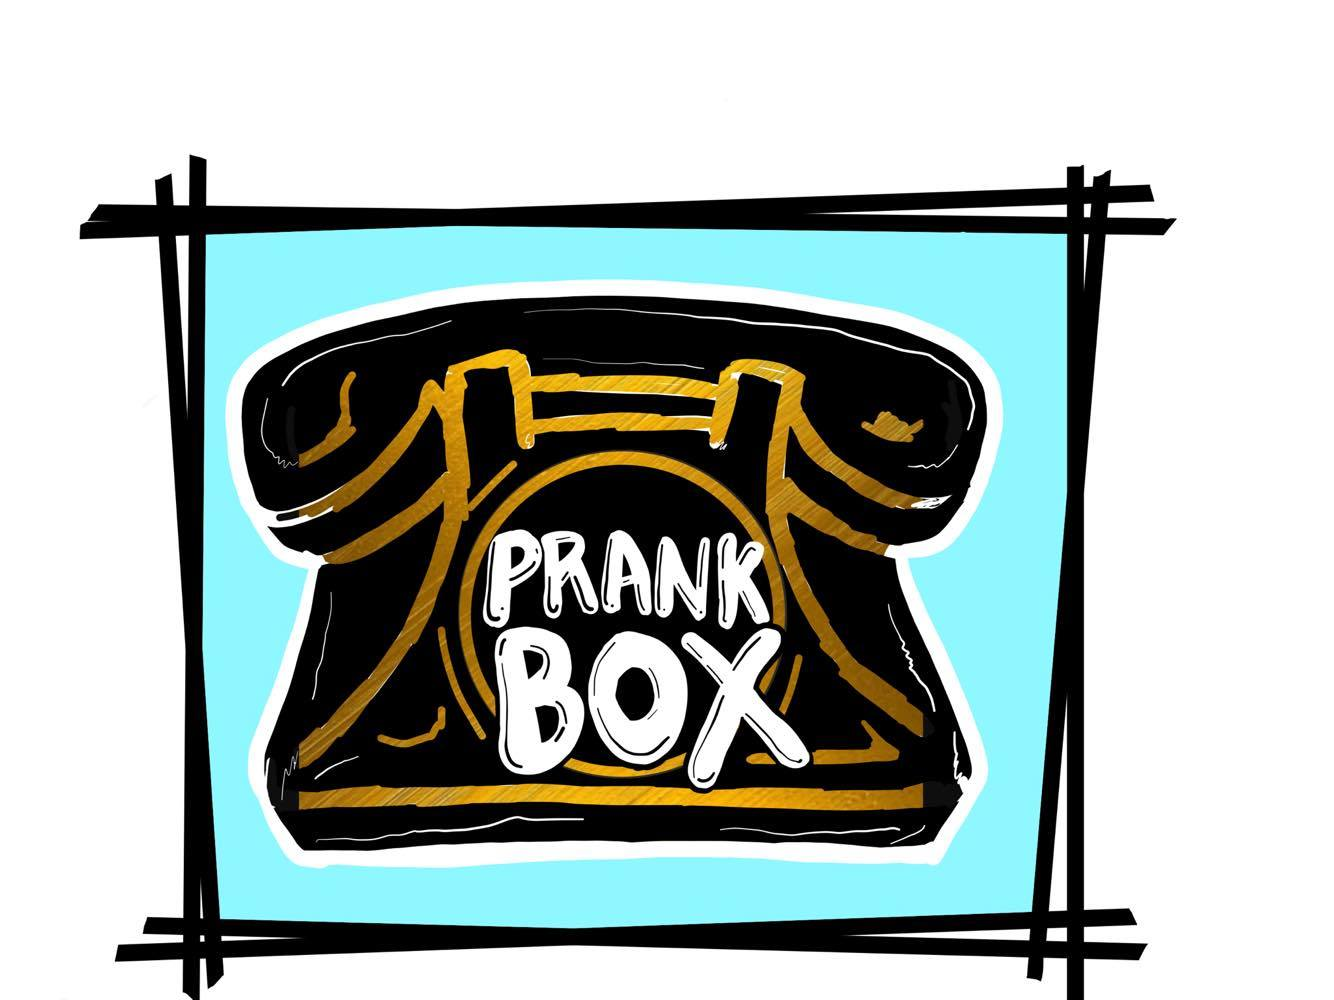 Prank Box the PodcastThe Prank Box Podcast is a prank call game show hosted by rap artist Big Heed (Shaheed Smith) and comedian Amanda Marks launching Summer 2017. The podcast will featuring interviews and prank calling games with celebrity guests.  We are currently in pre-production and have booked comedian Plug Chapman from Kevin Hart's Hart of the City on Comedy Central and Dave Willis from Adult Swim's Aqua Teen Hunger Force, Squidbillies, and Your Pretty Face is Going to Hell. - For talent bookings or sponsorship opportunities, please email PrankBox4Life@gmail.com